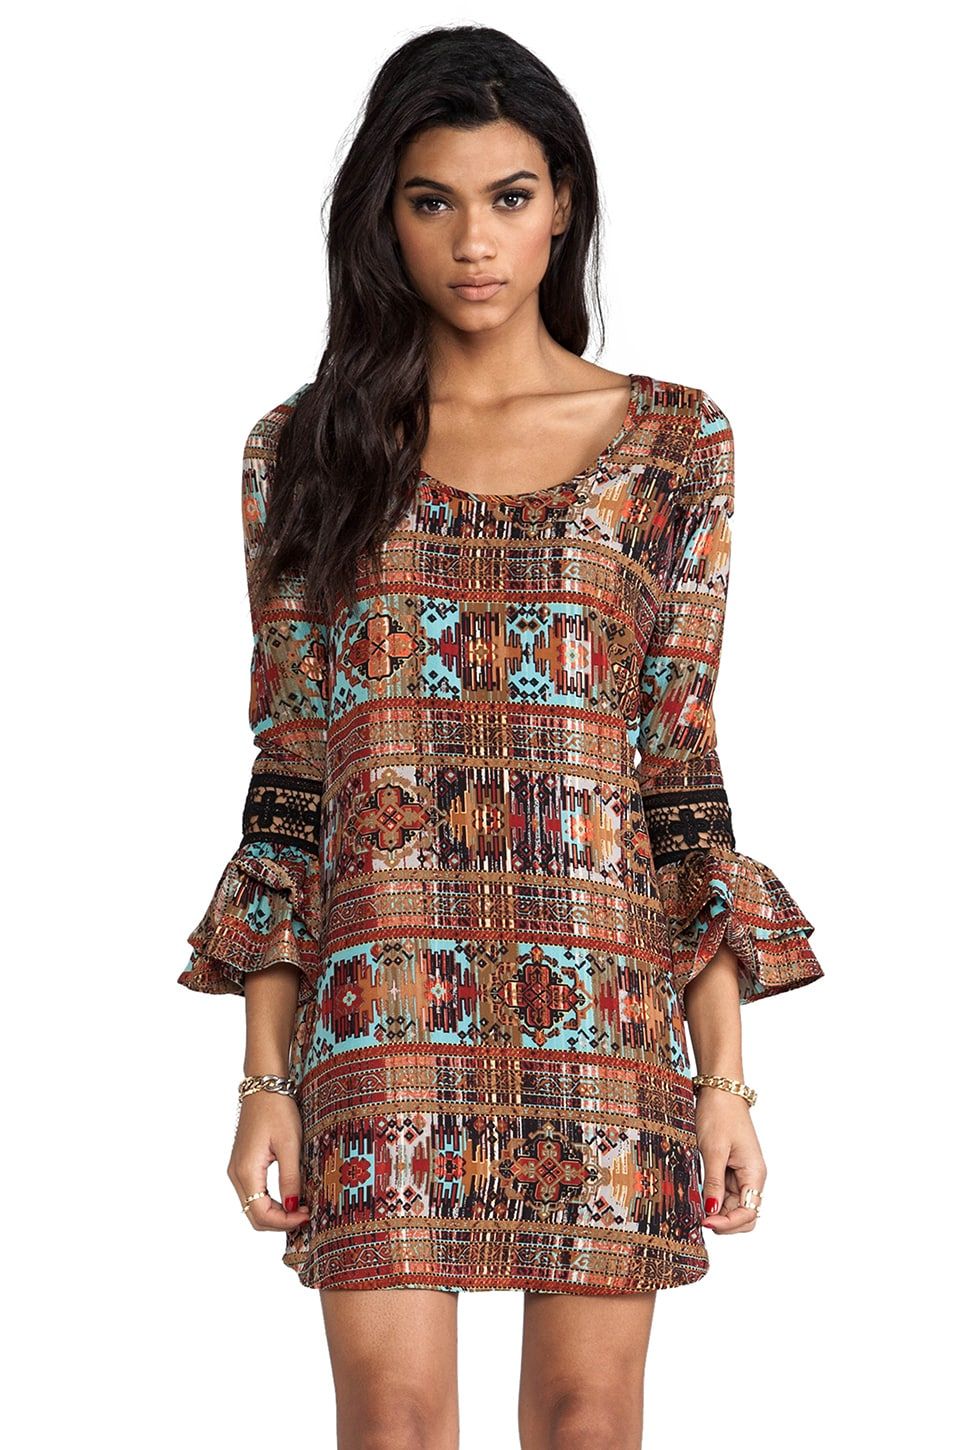 VOOM by Joy Han Calista Long Sleeve Dress in Brown